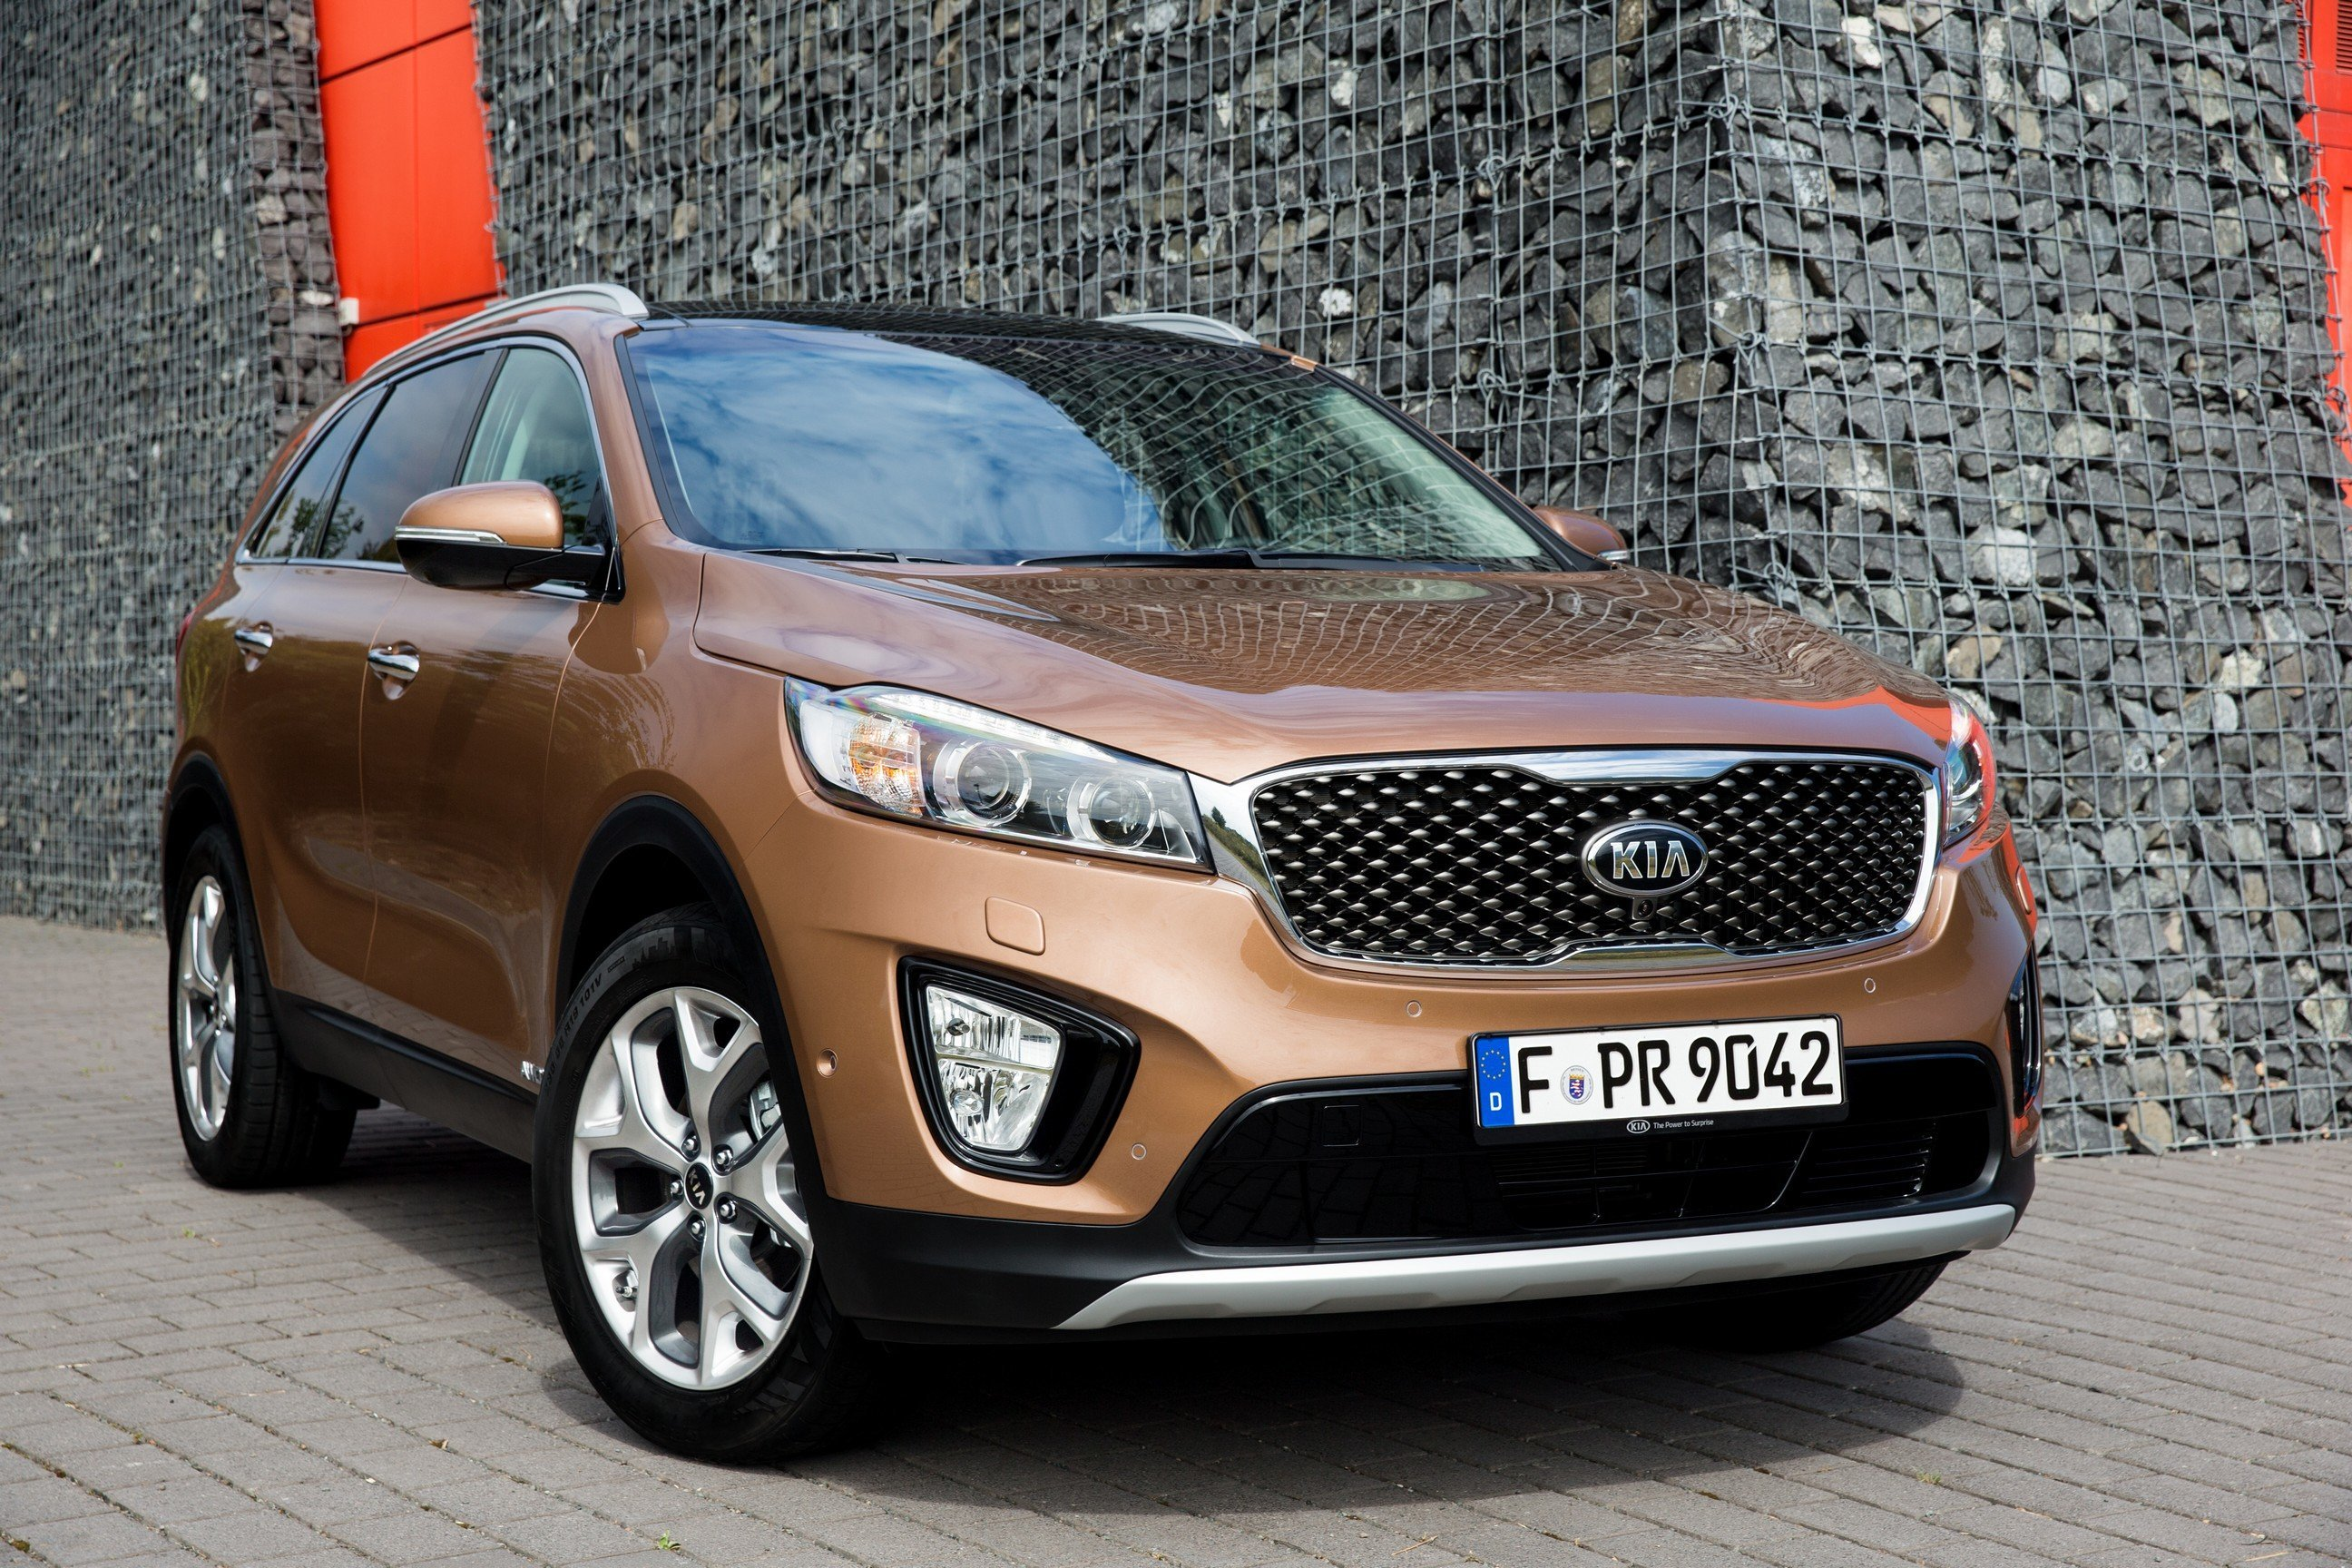 sale sxl kia used price for awd suv sorento